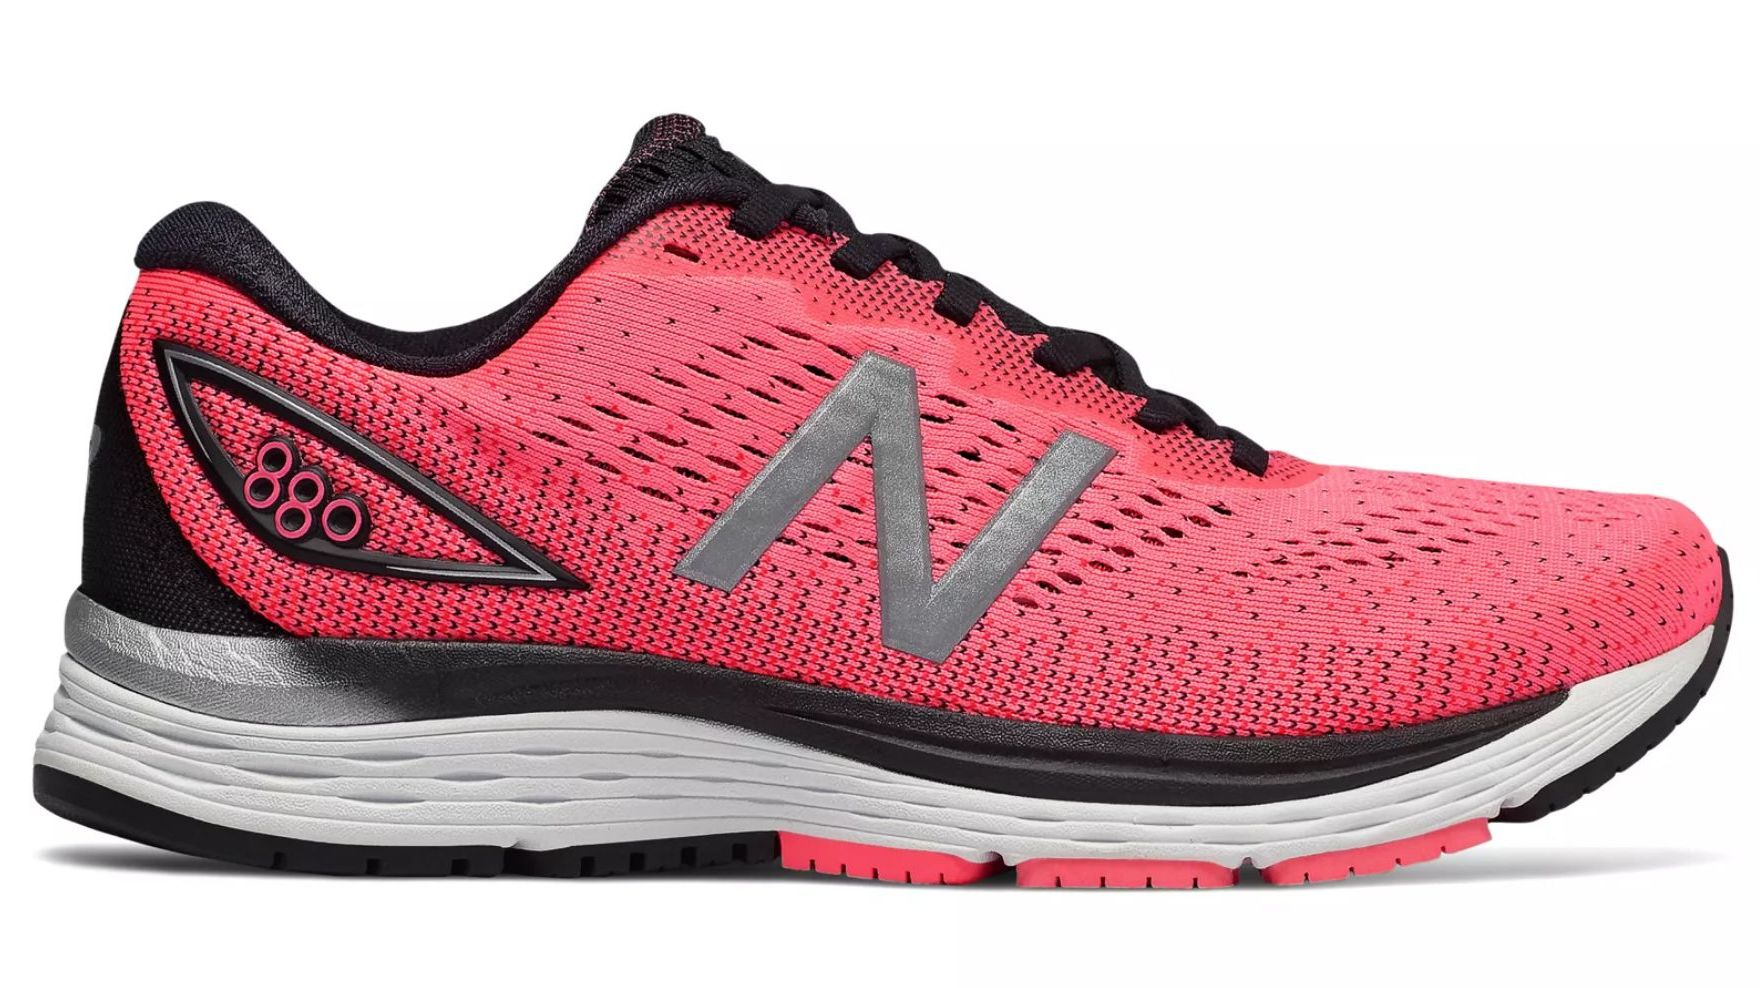 best sneakers cfcb2 b09e9 Best New Balance Running Shoes | New Balance Shoe Reviews 2019